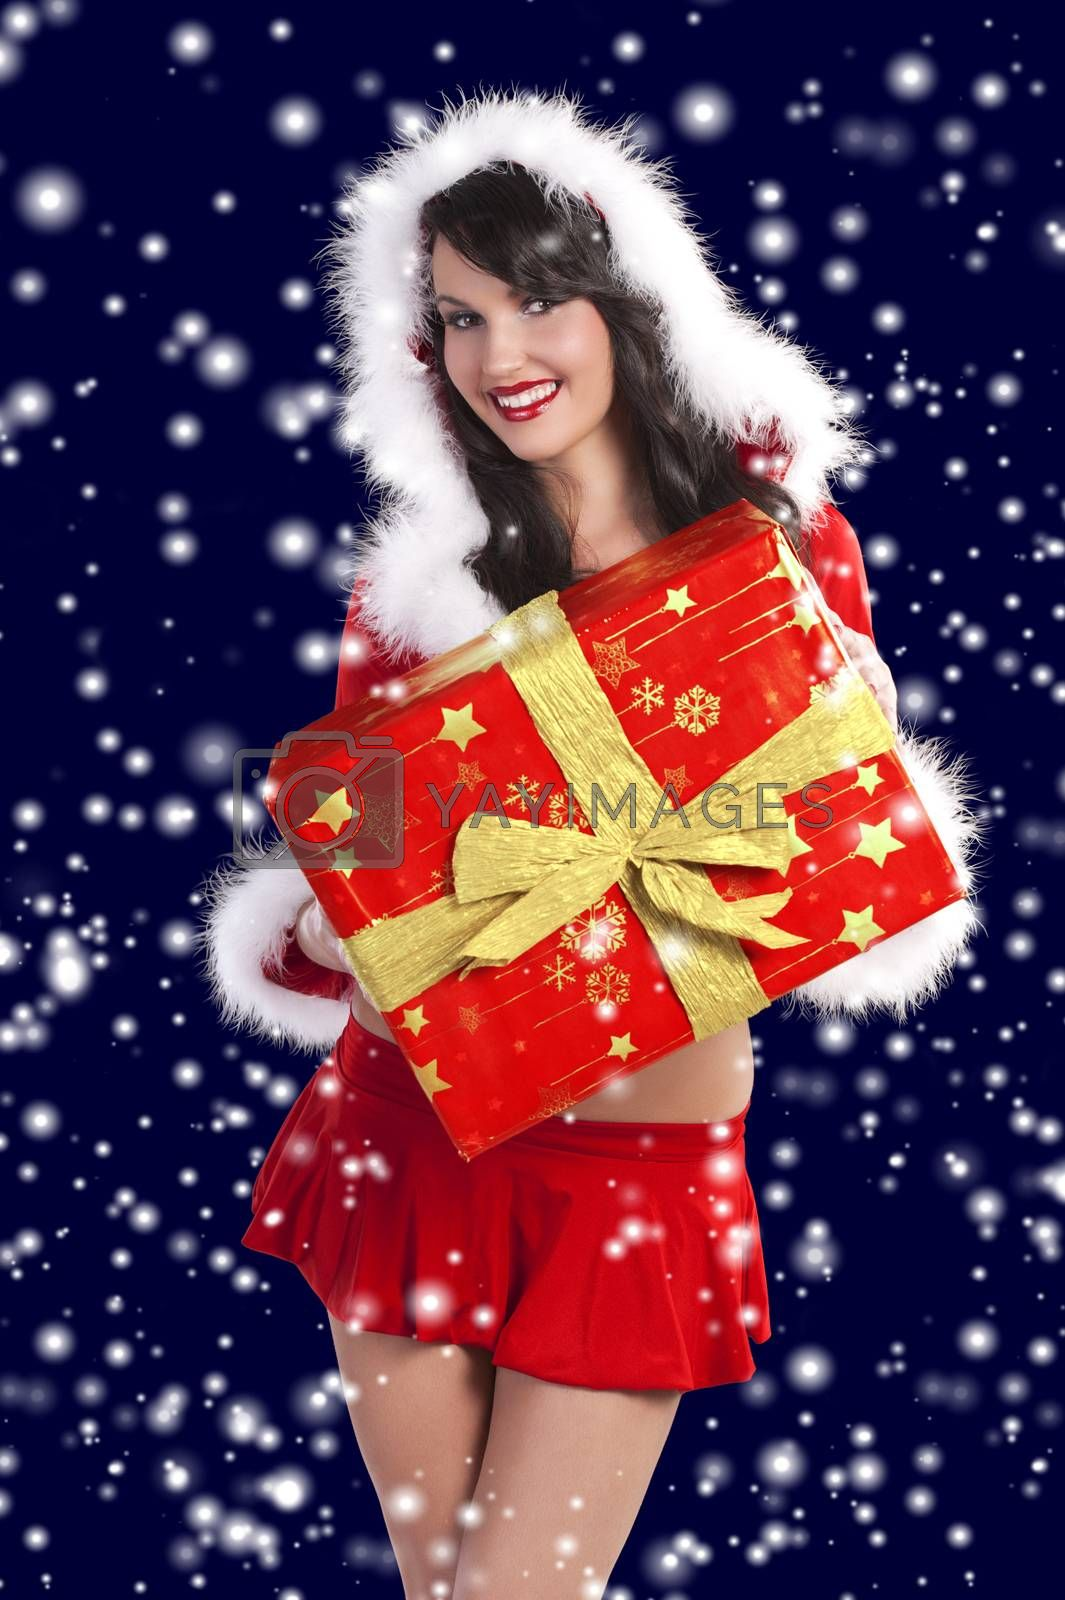 Royalty free image of brunette as santa claus in sow by fotoCD